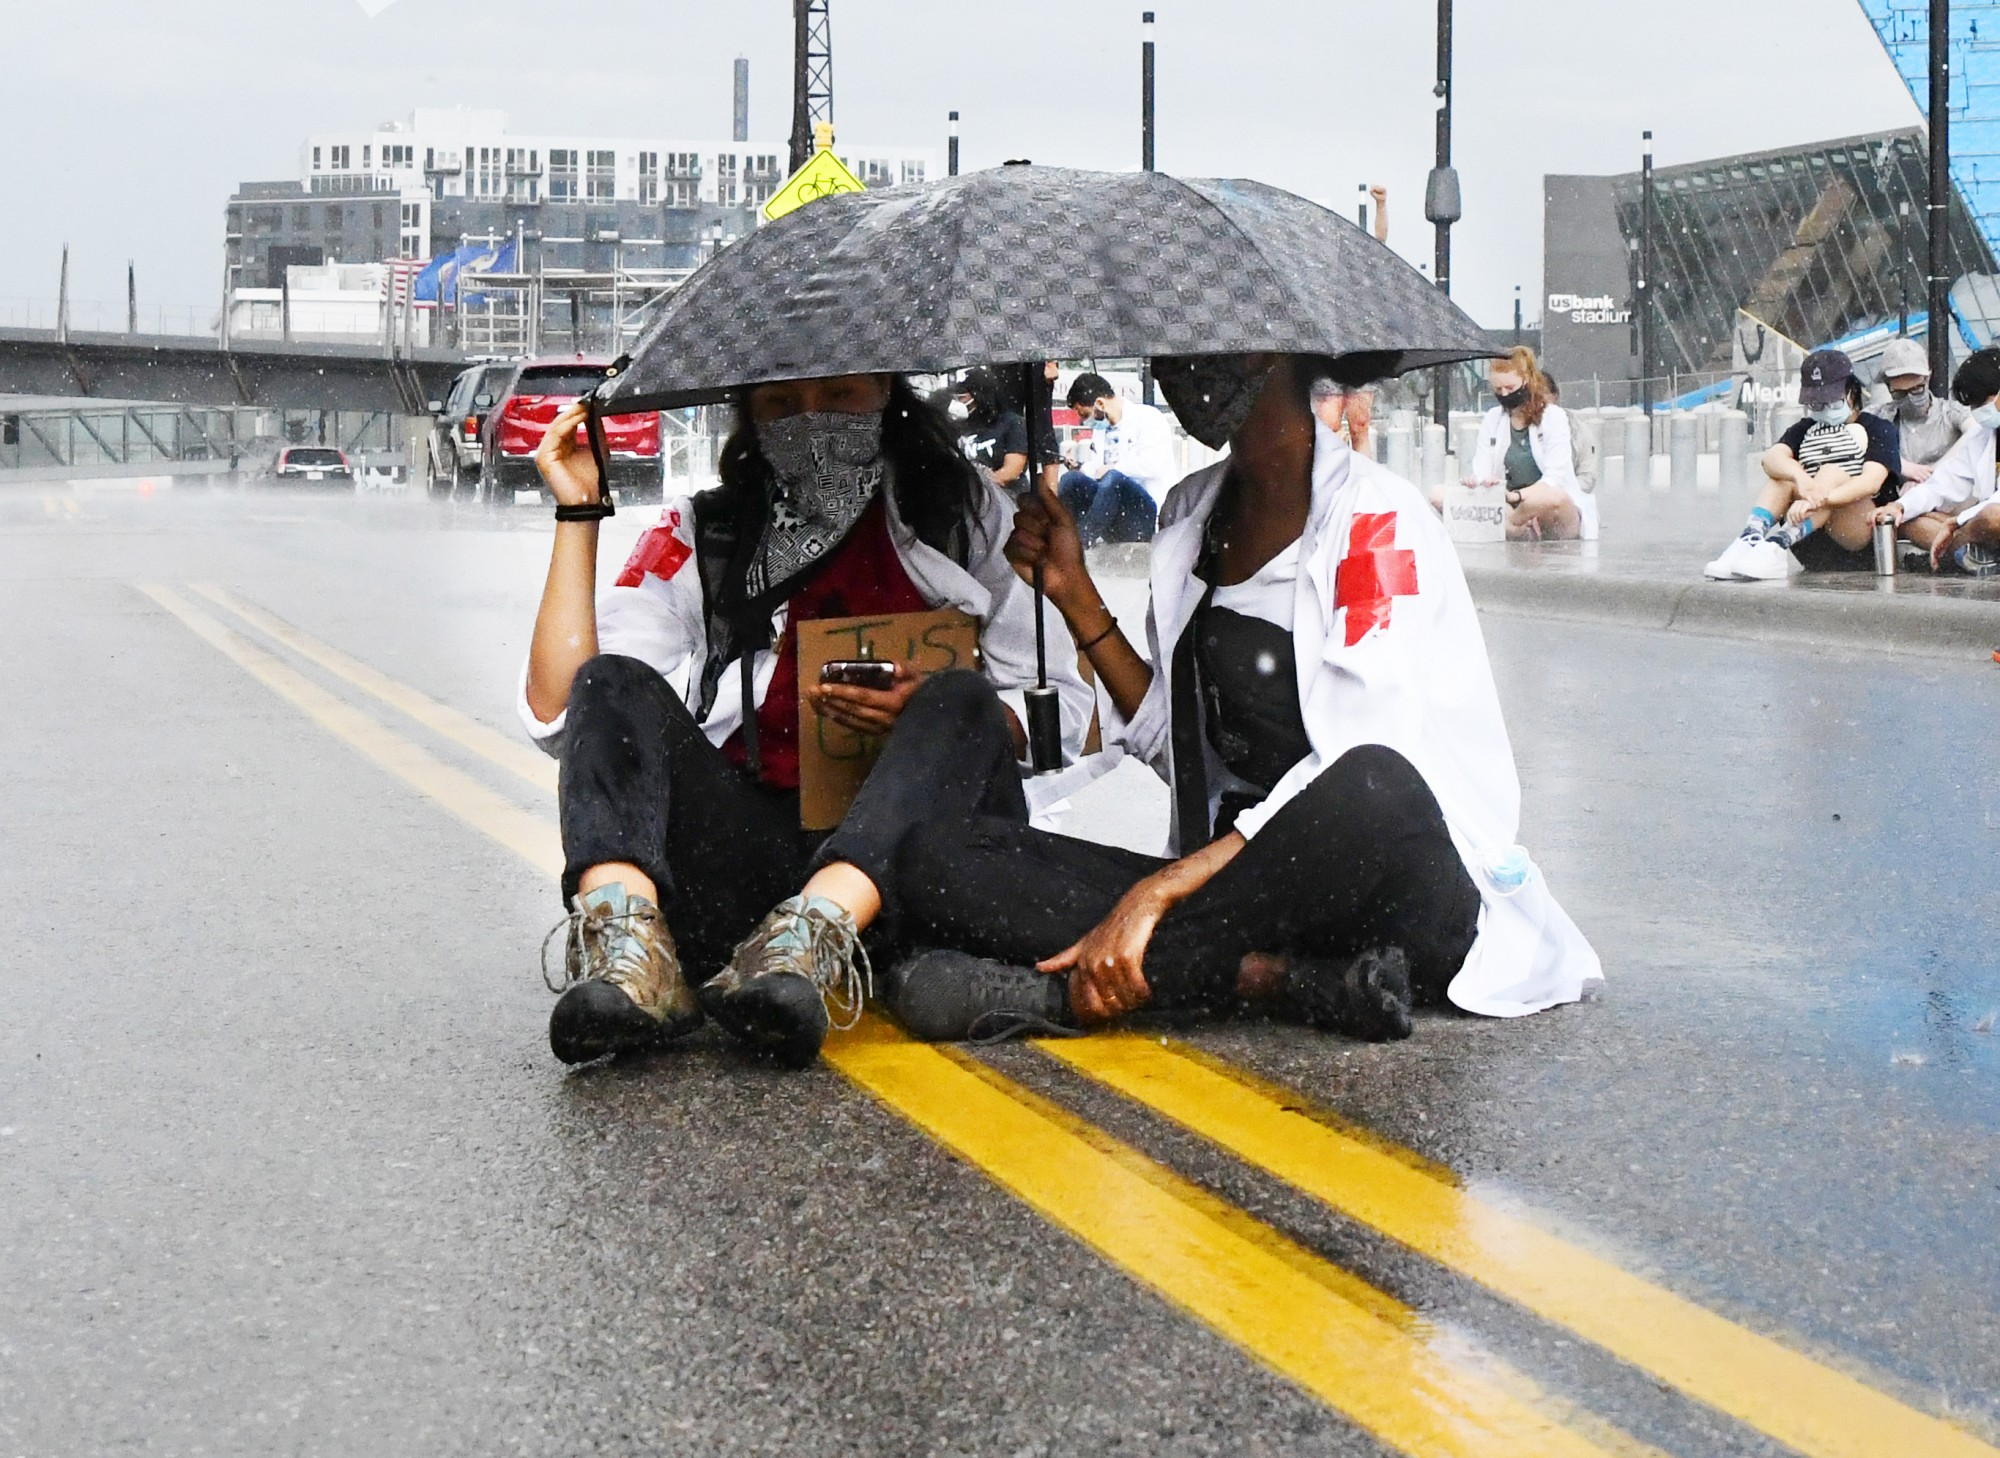 University of Minnesota medical student Edith Hernandez times out eight minutes and forty-six seconds while leading a moment of silence as first-year medical student Safa Abdulkadir holds an umbrella over them in pouring rain outside of the Hennepin County Medical Examiner's office on Tuesday, June 2.